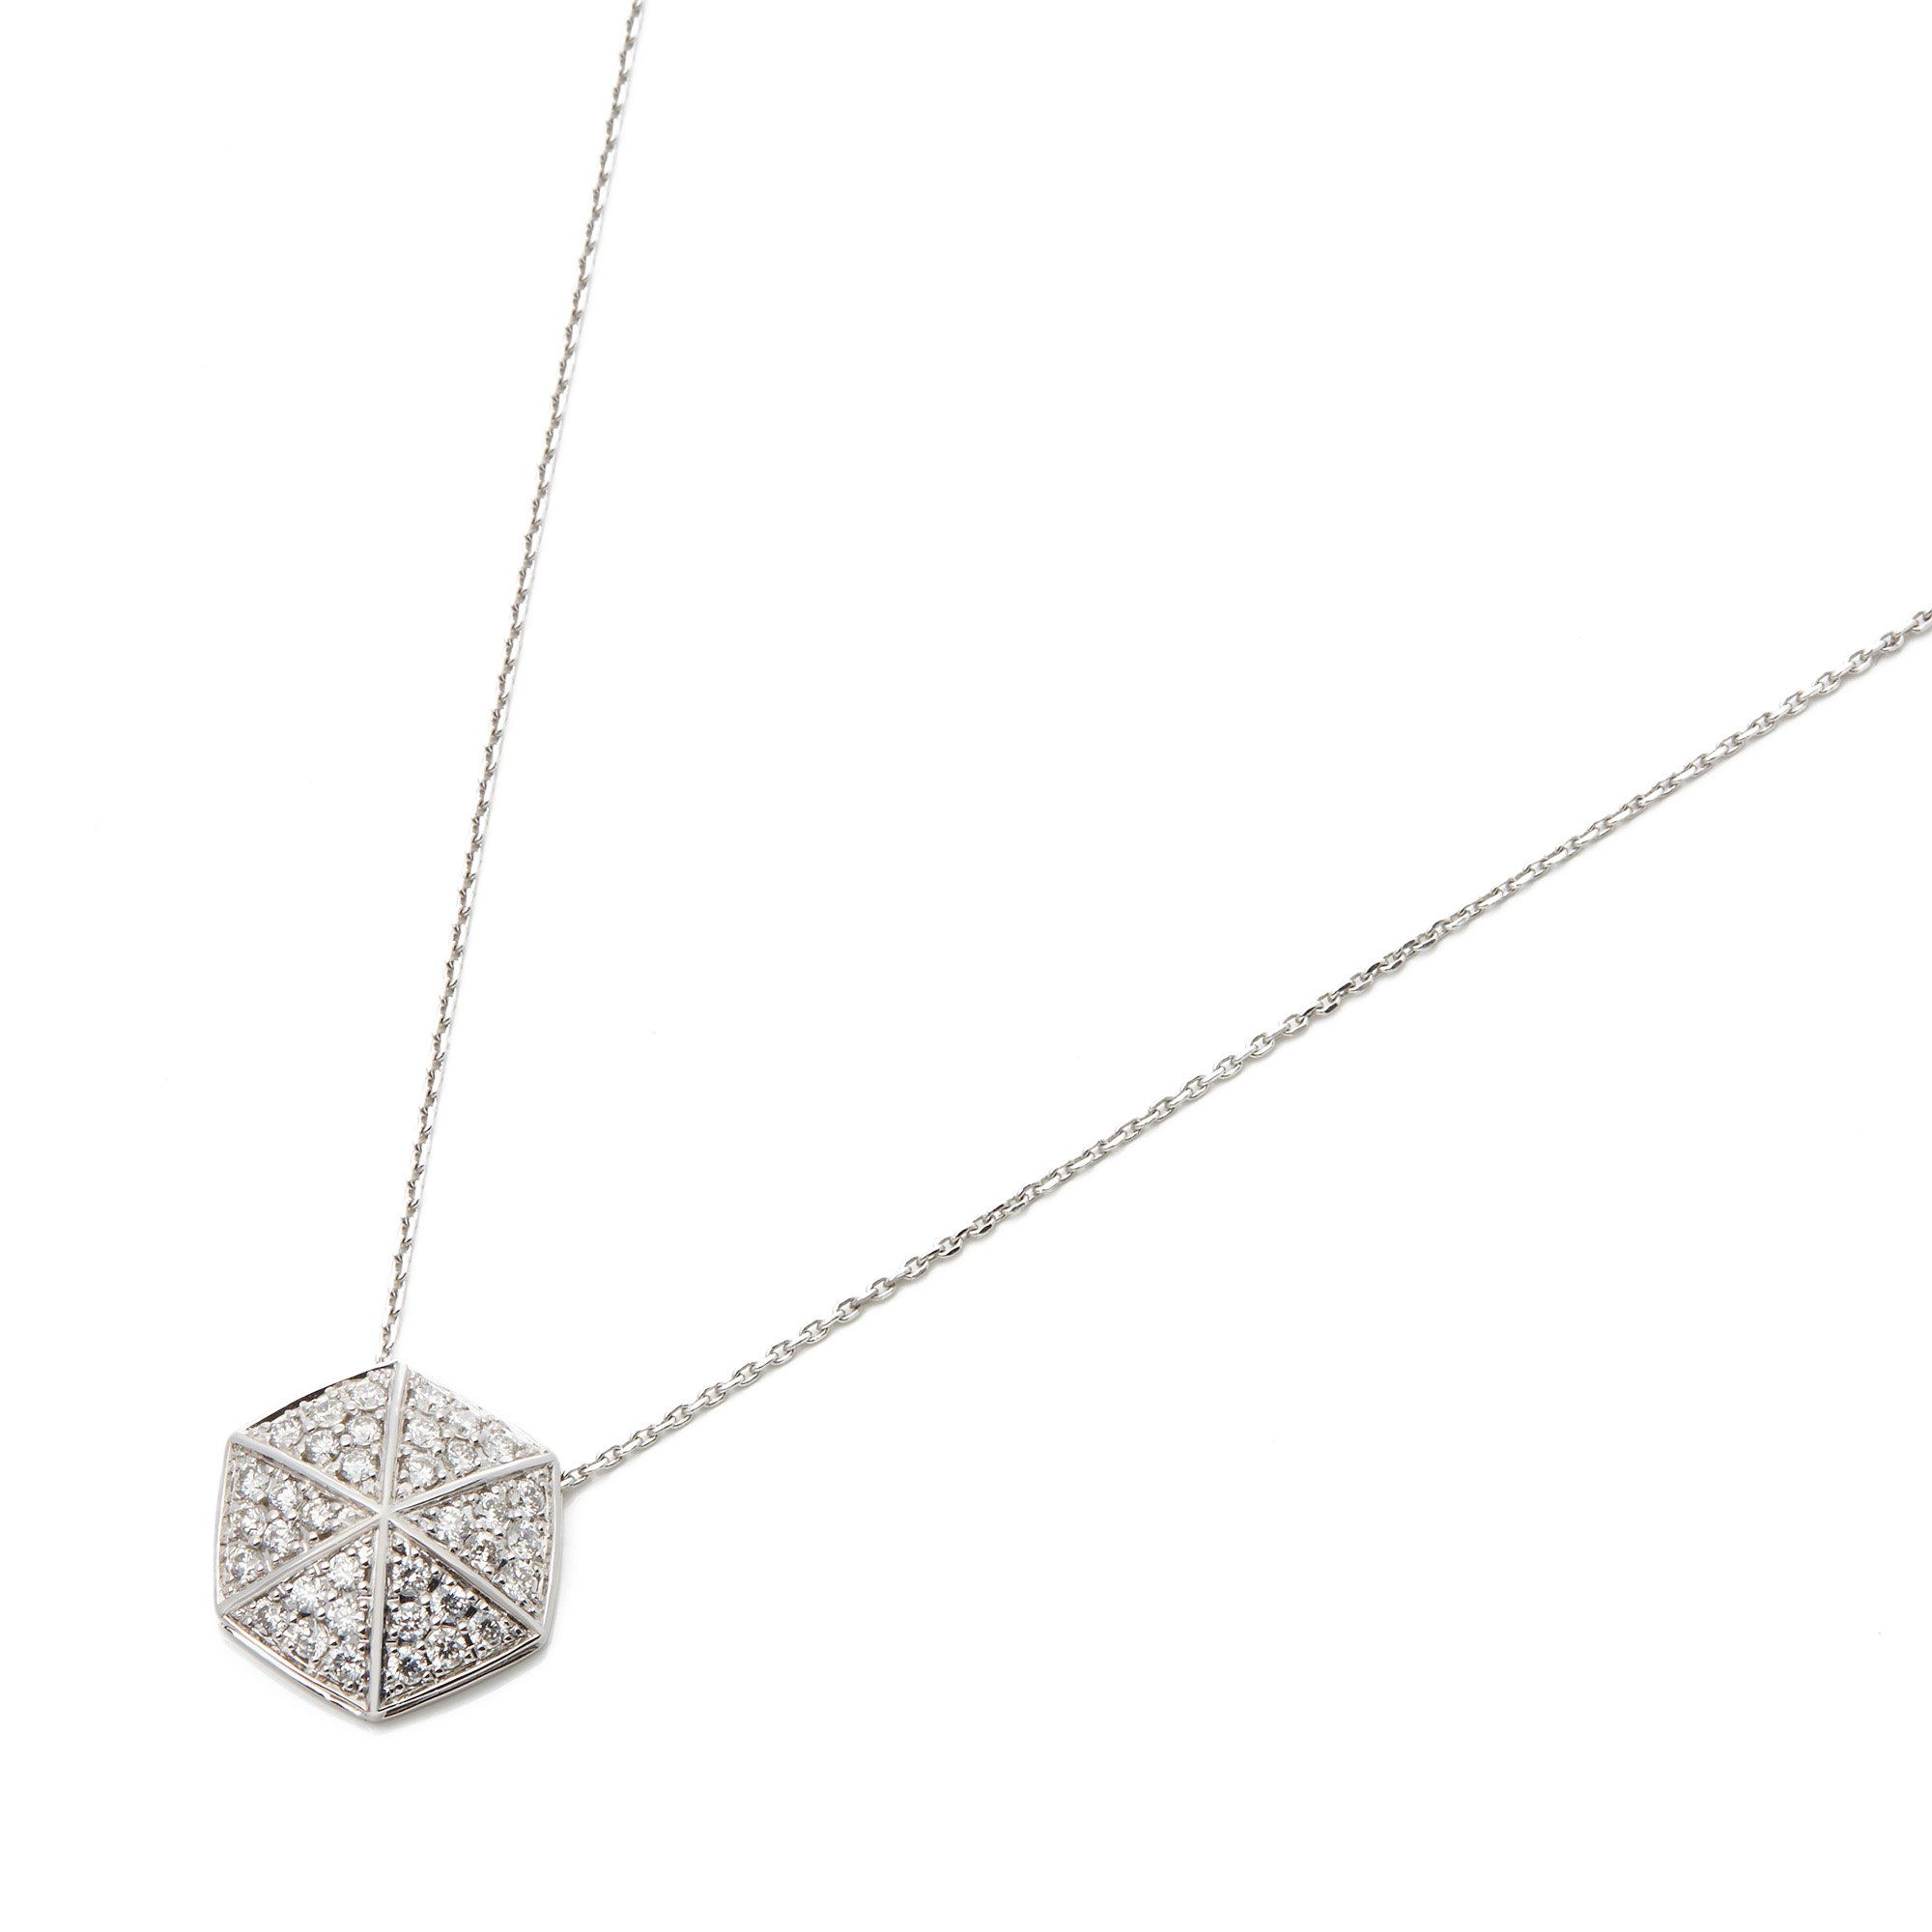 Stephen Webster 18k White Gold full Pave Diamond Deco Pendant